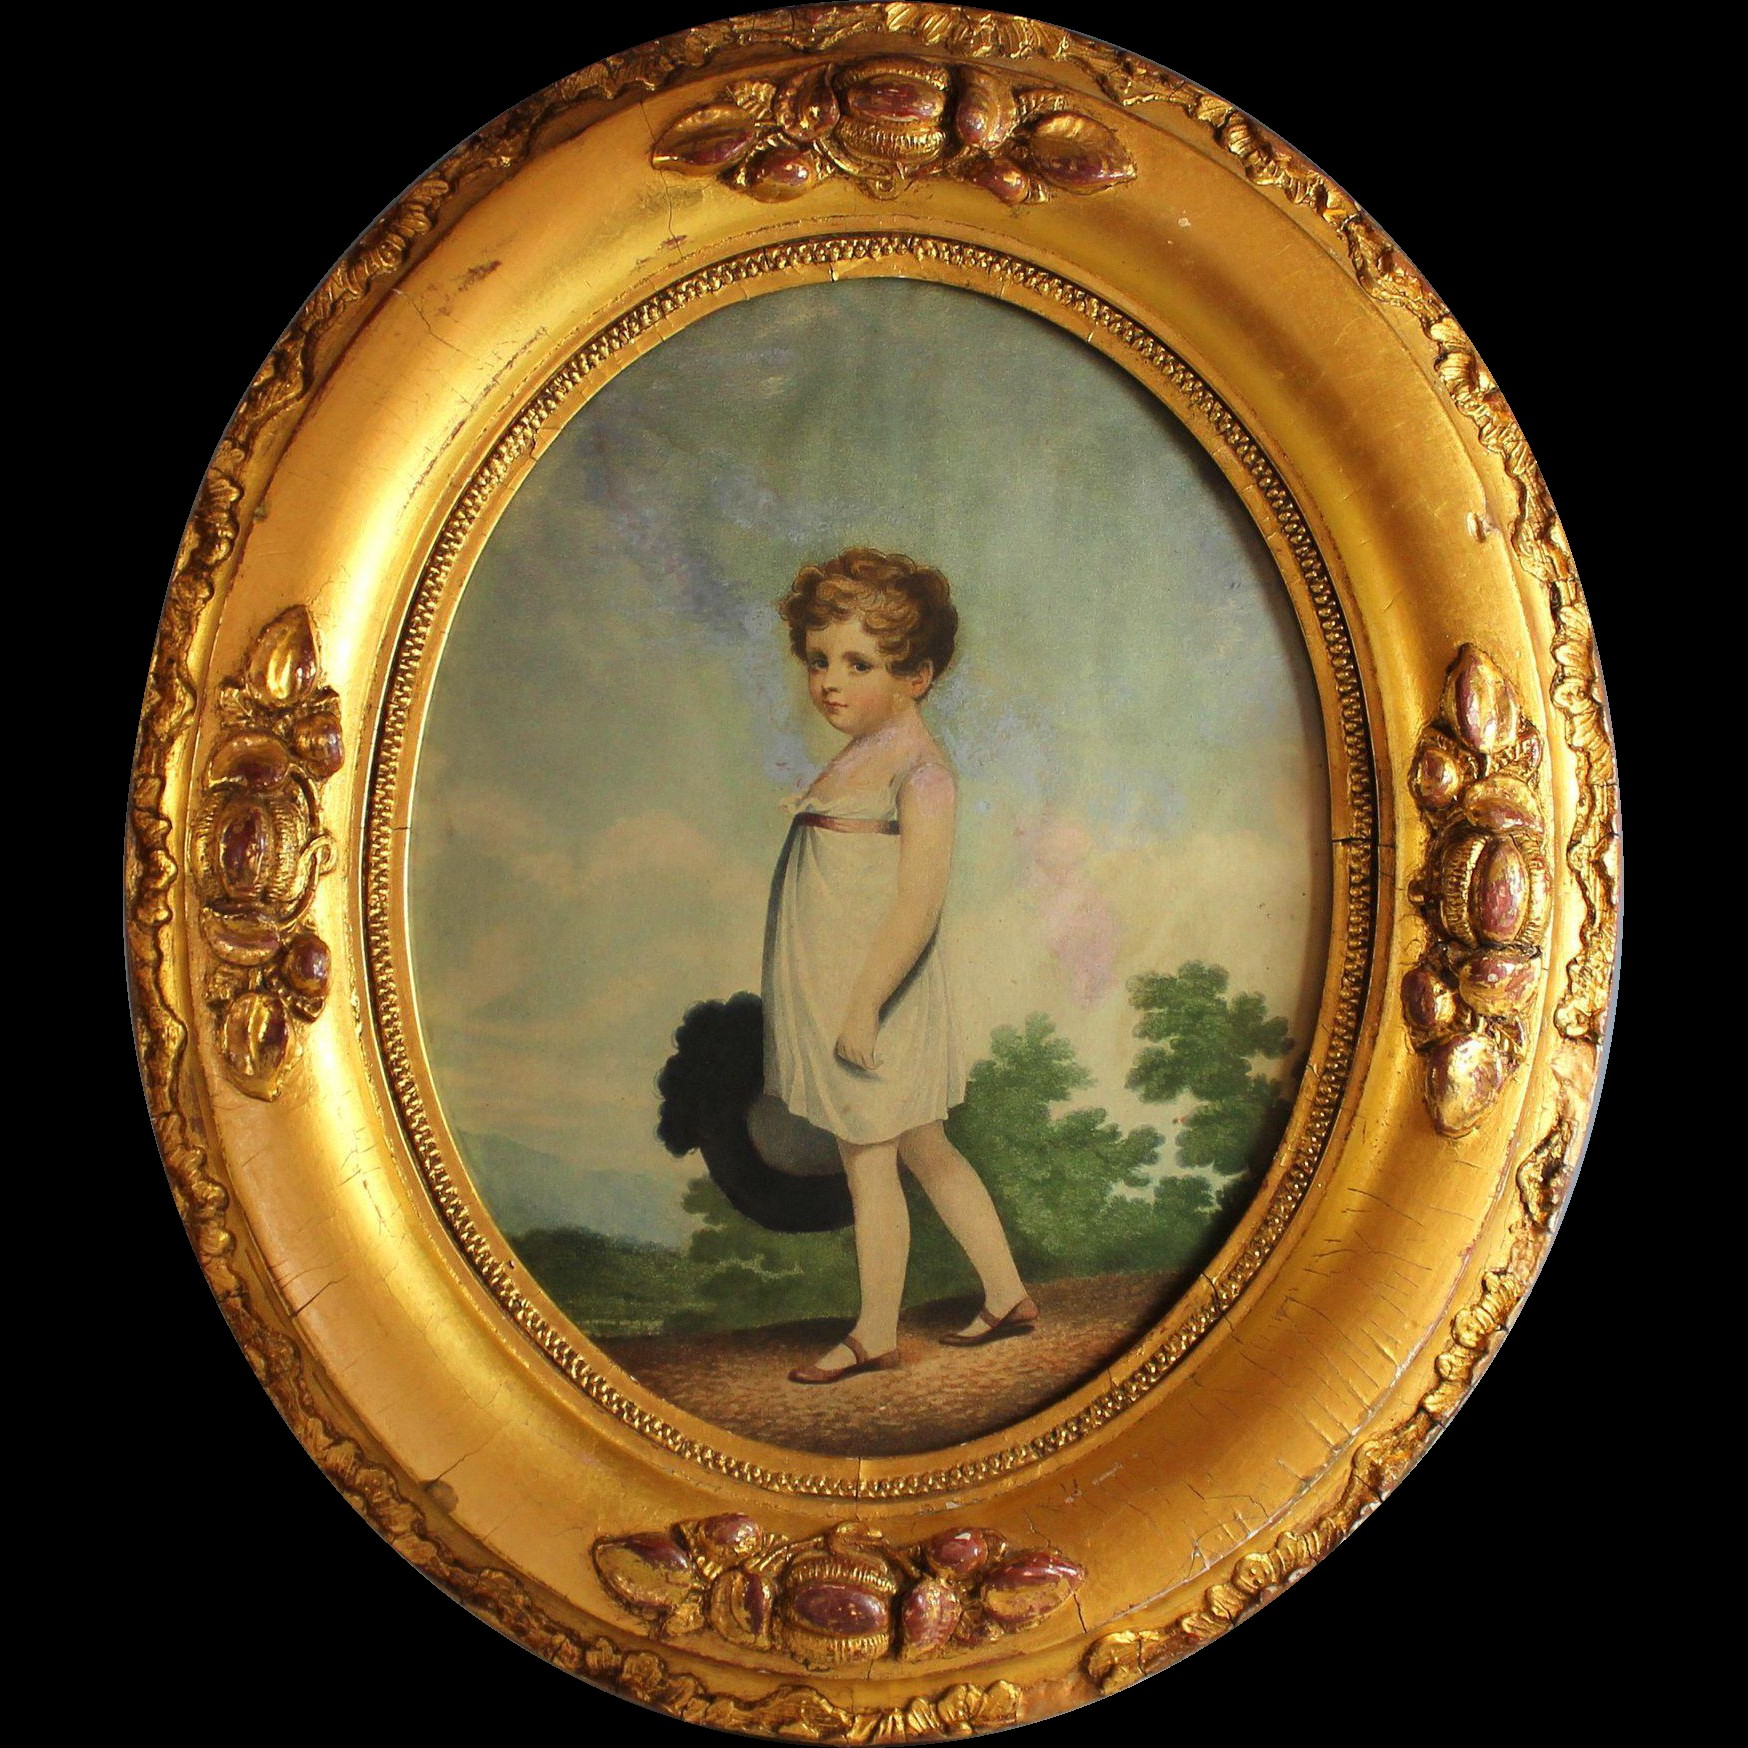 Antique Oval Gilded Frame with Antique Print of a Young Girl